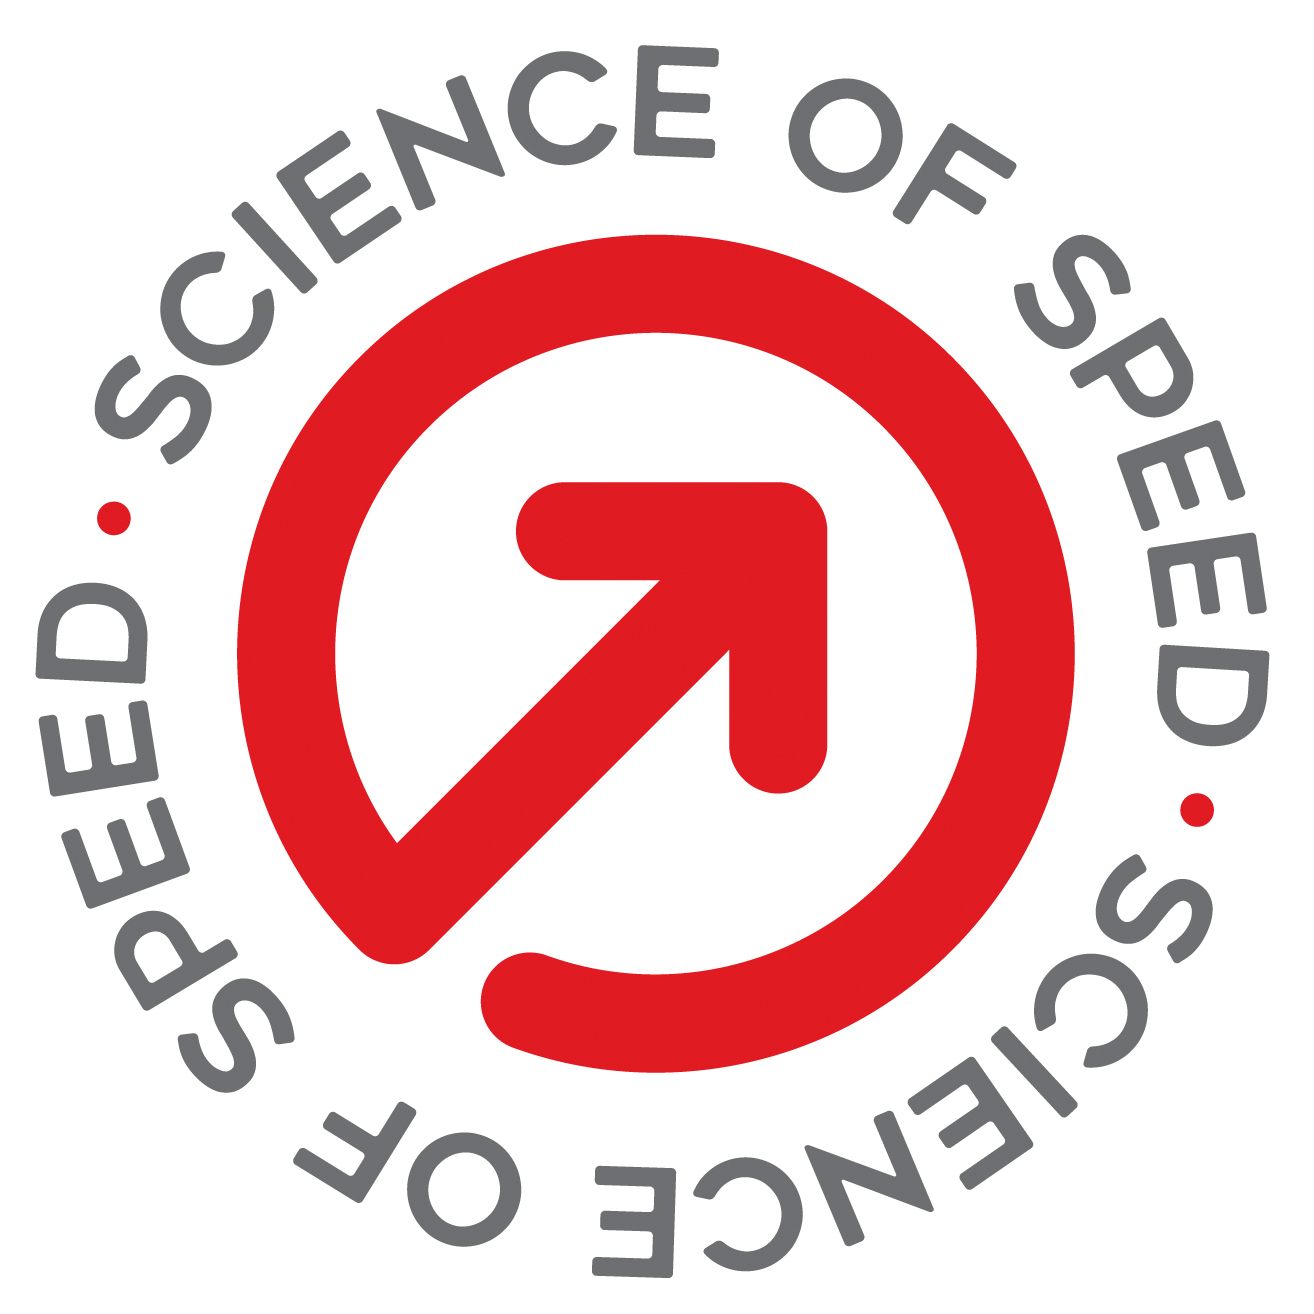 Science of Speed